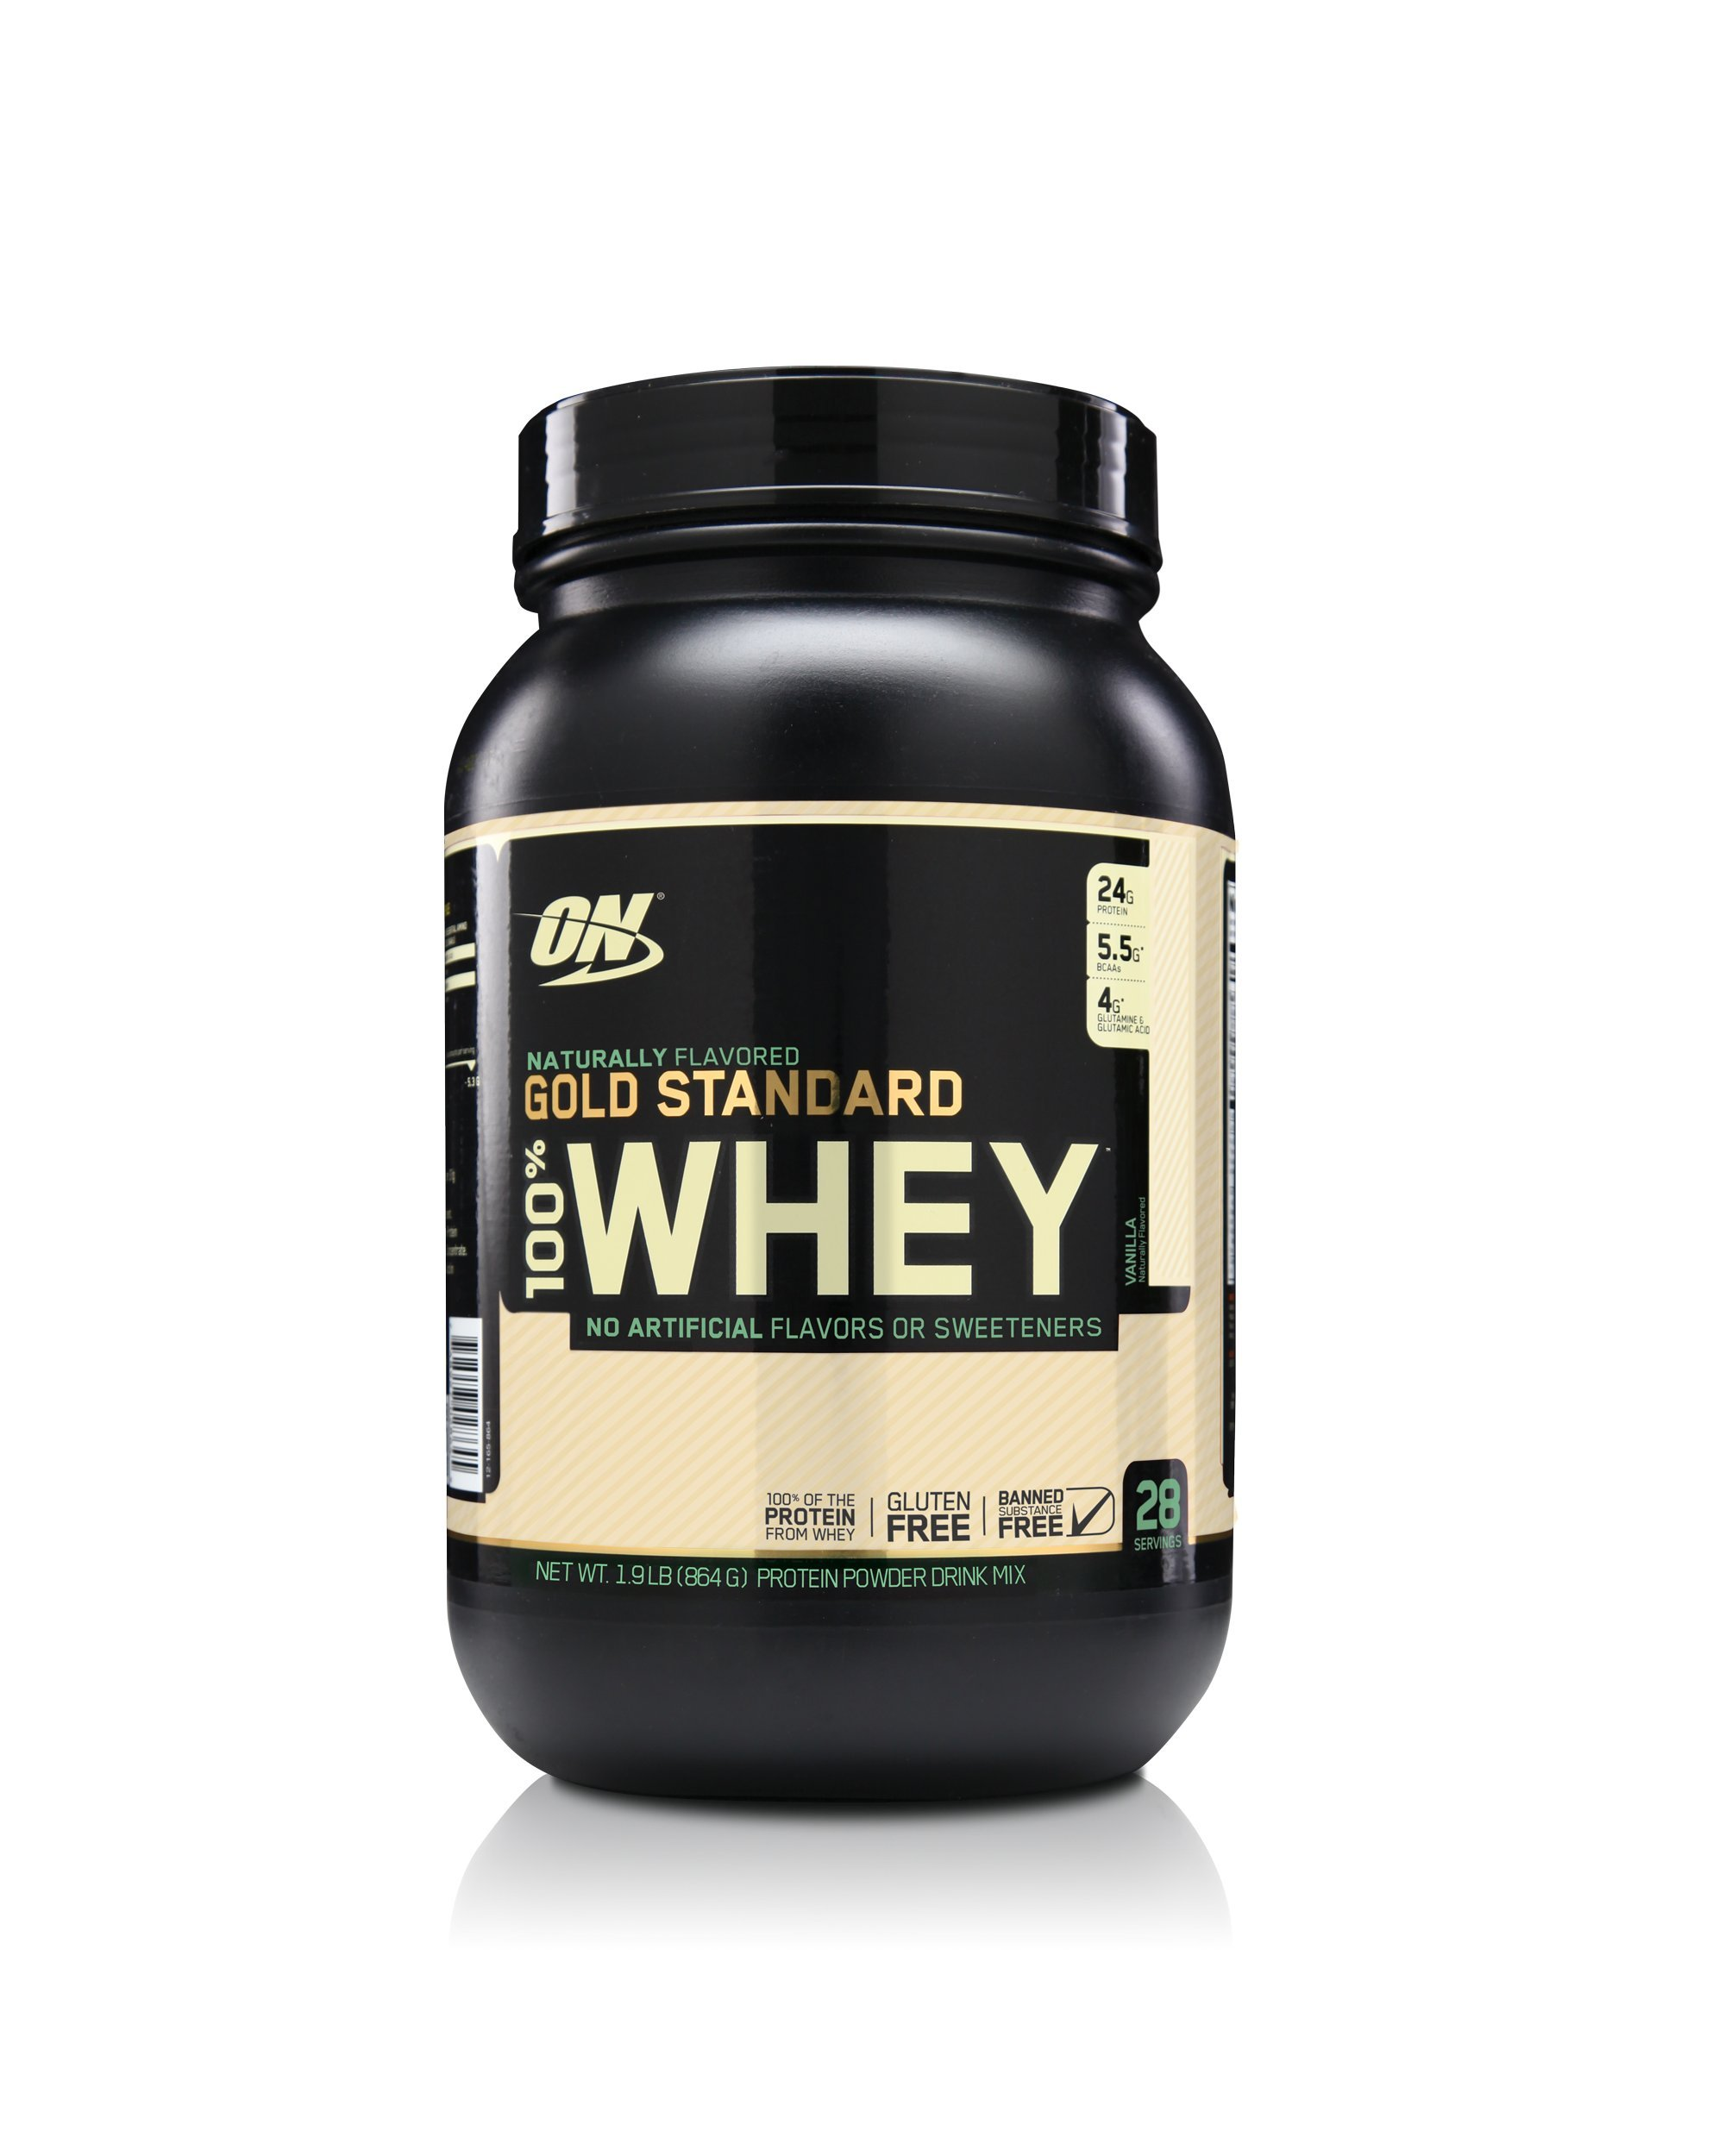 OPTIMUM NUTRITION GOLD STANDARD 100% Whey Protein Powder, Naturally Flavored Vanilla, 1.9 Pound by Optimum Nutrition